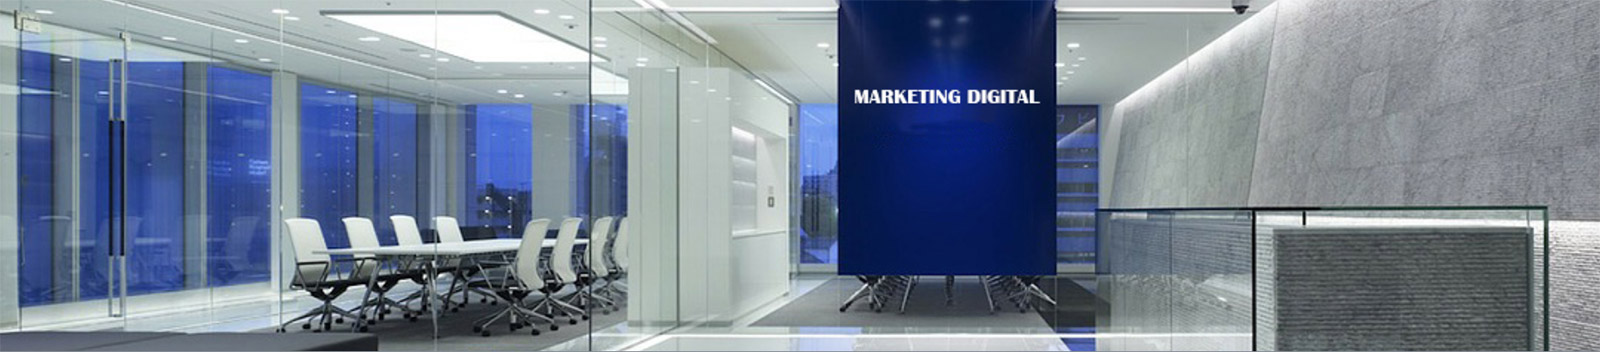 crivosoft agencia de marketing digital e inbound marketing